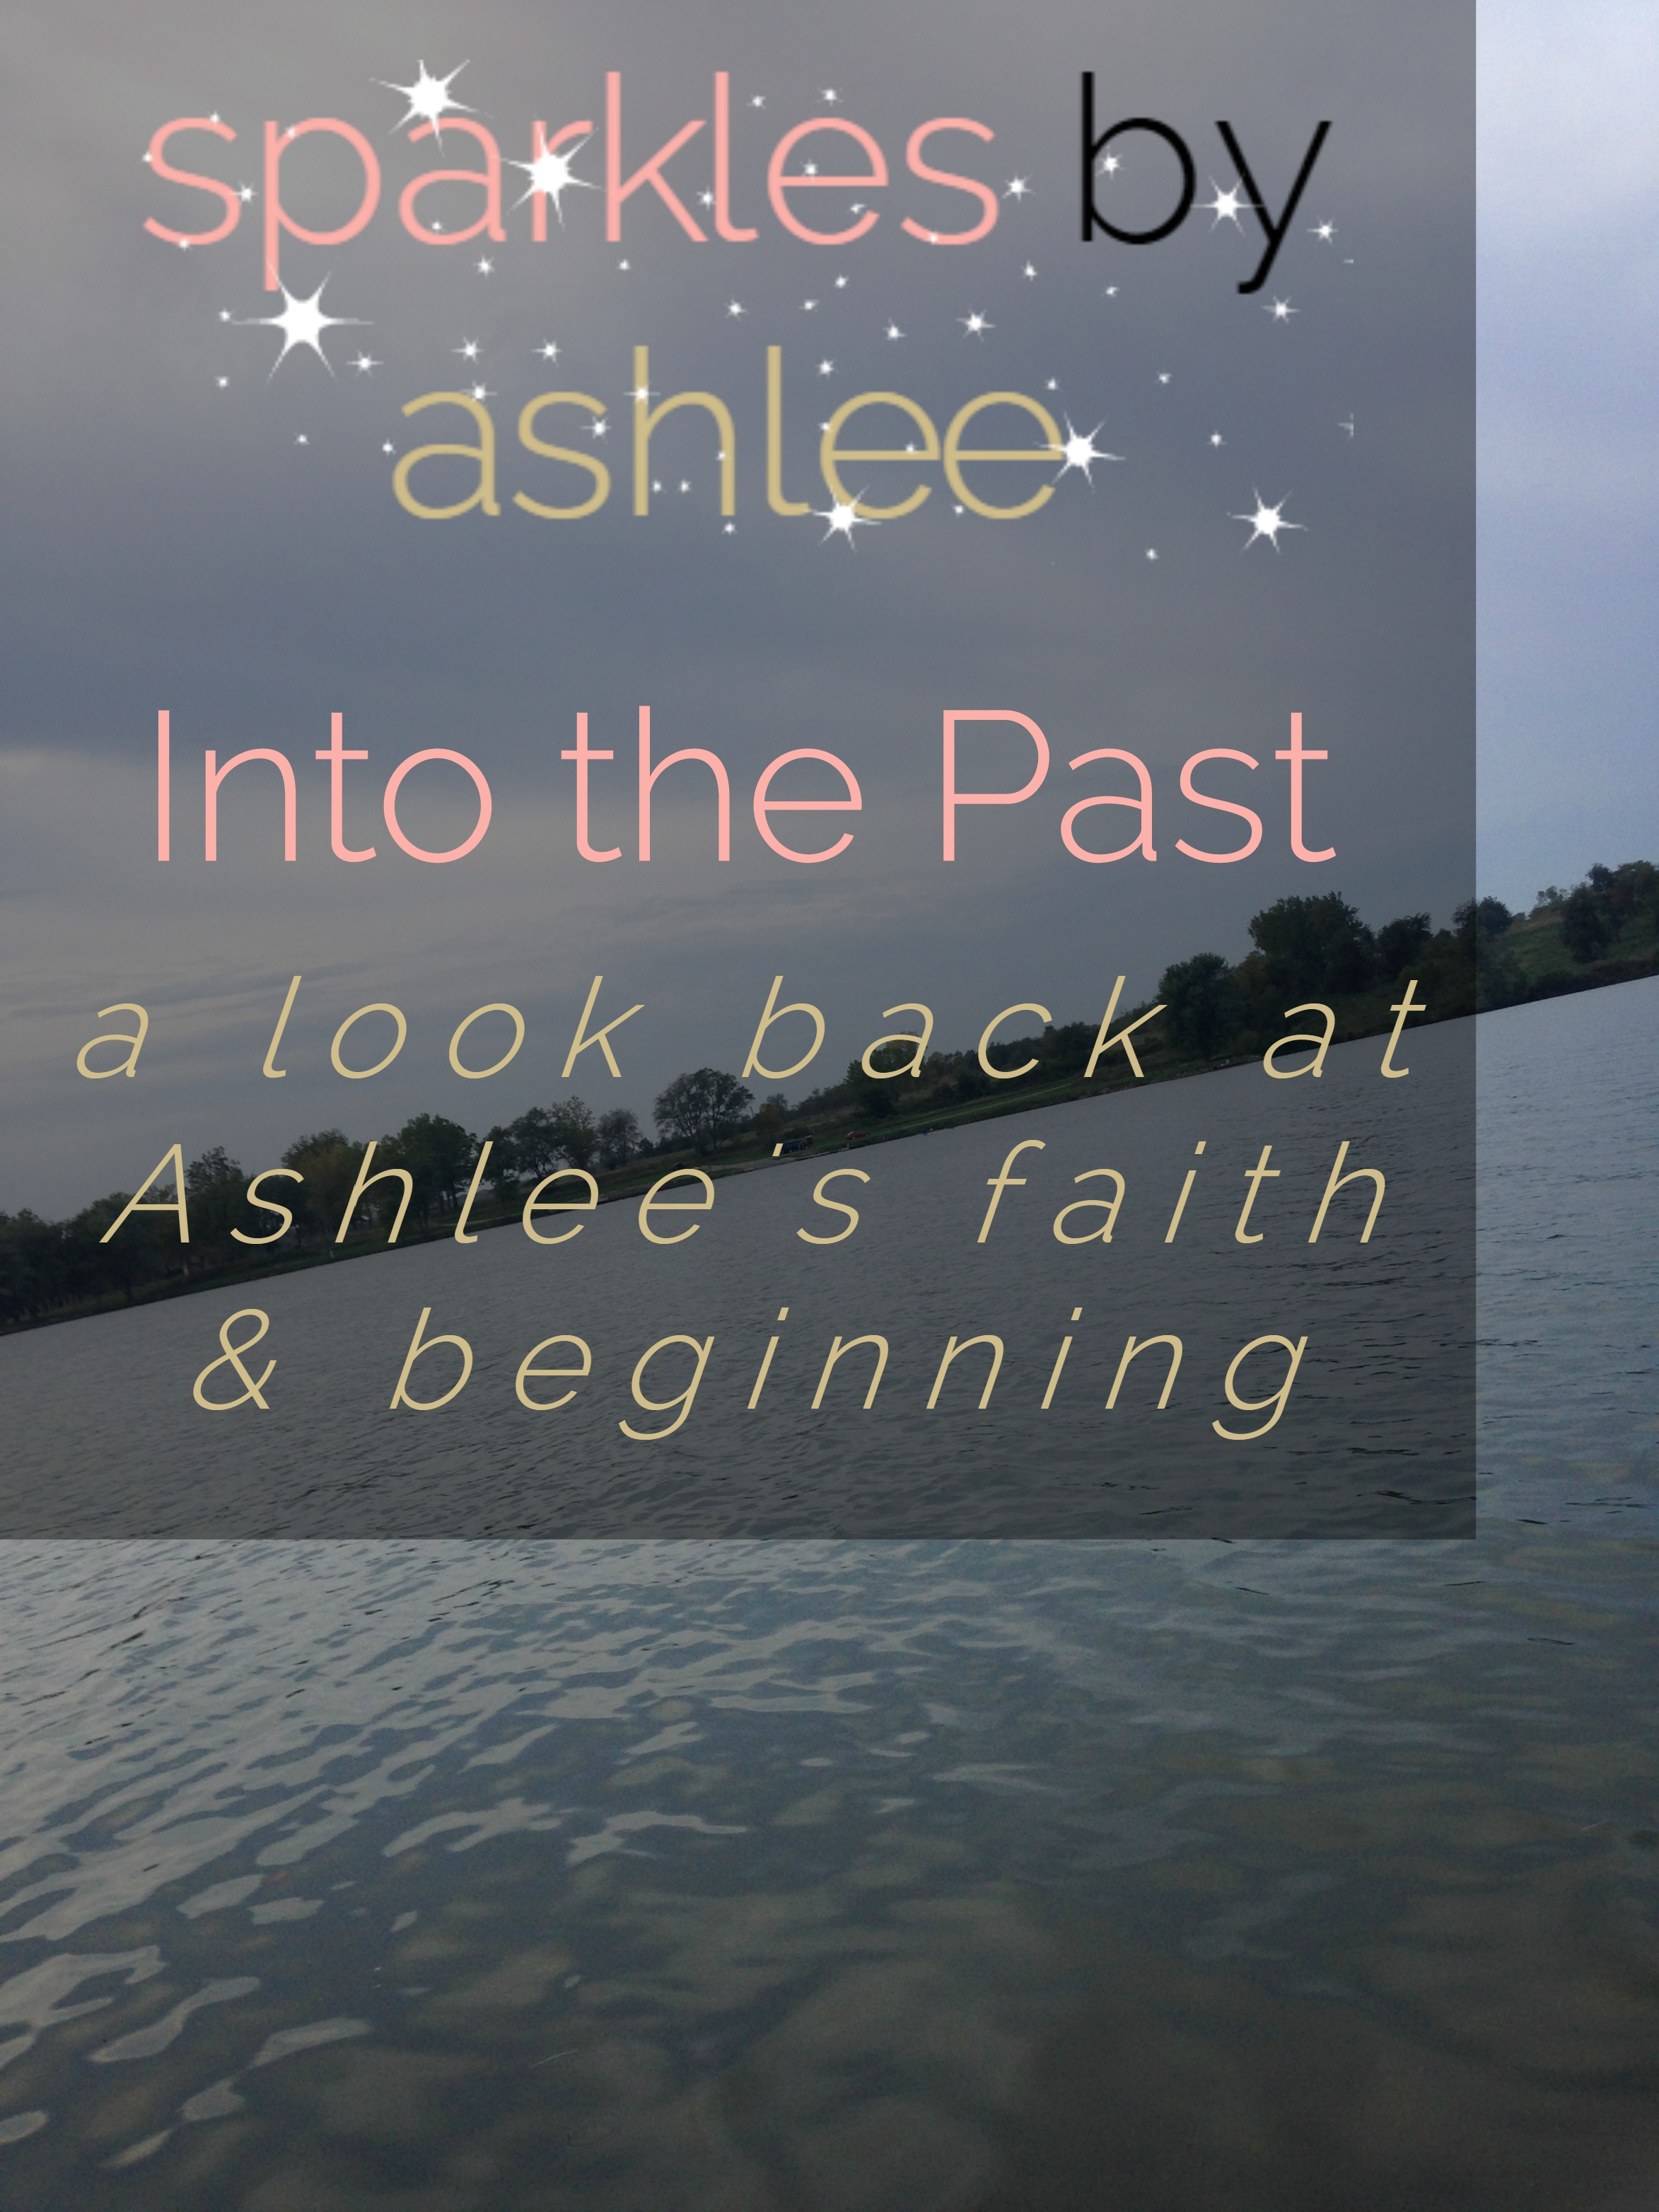 Into-the-Past-Sparkles-by-Ashlee.jpg